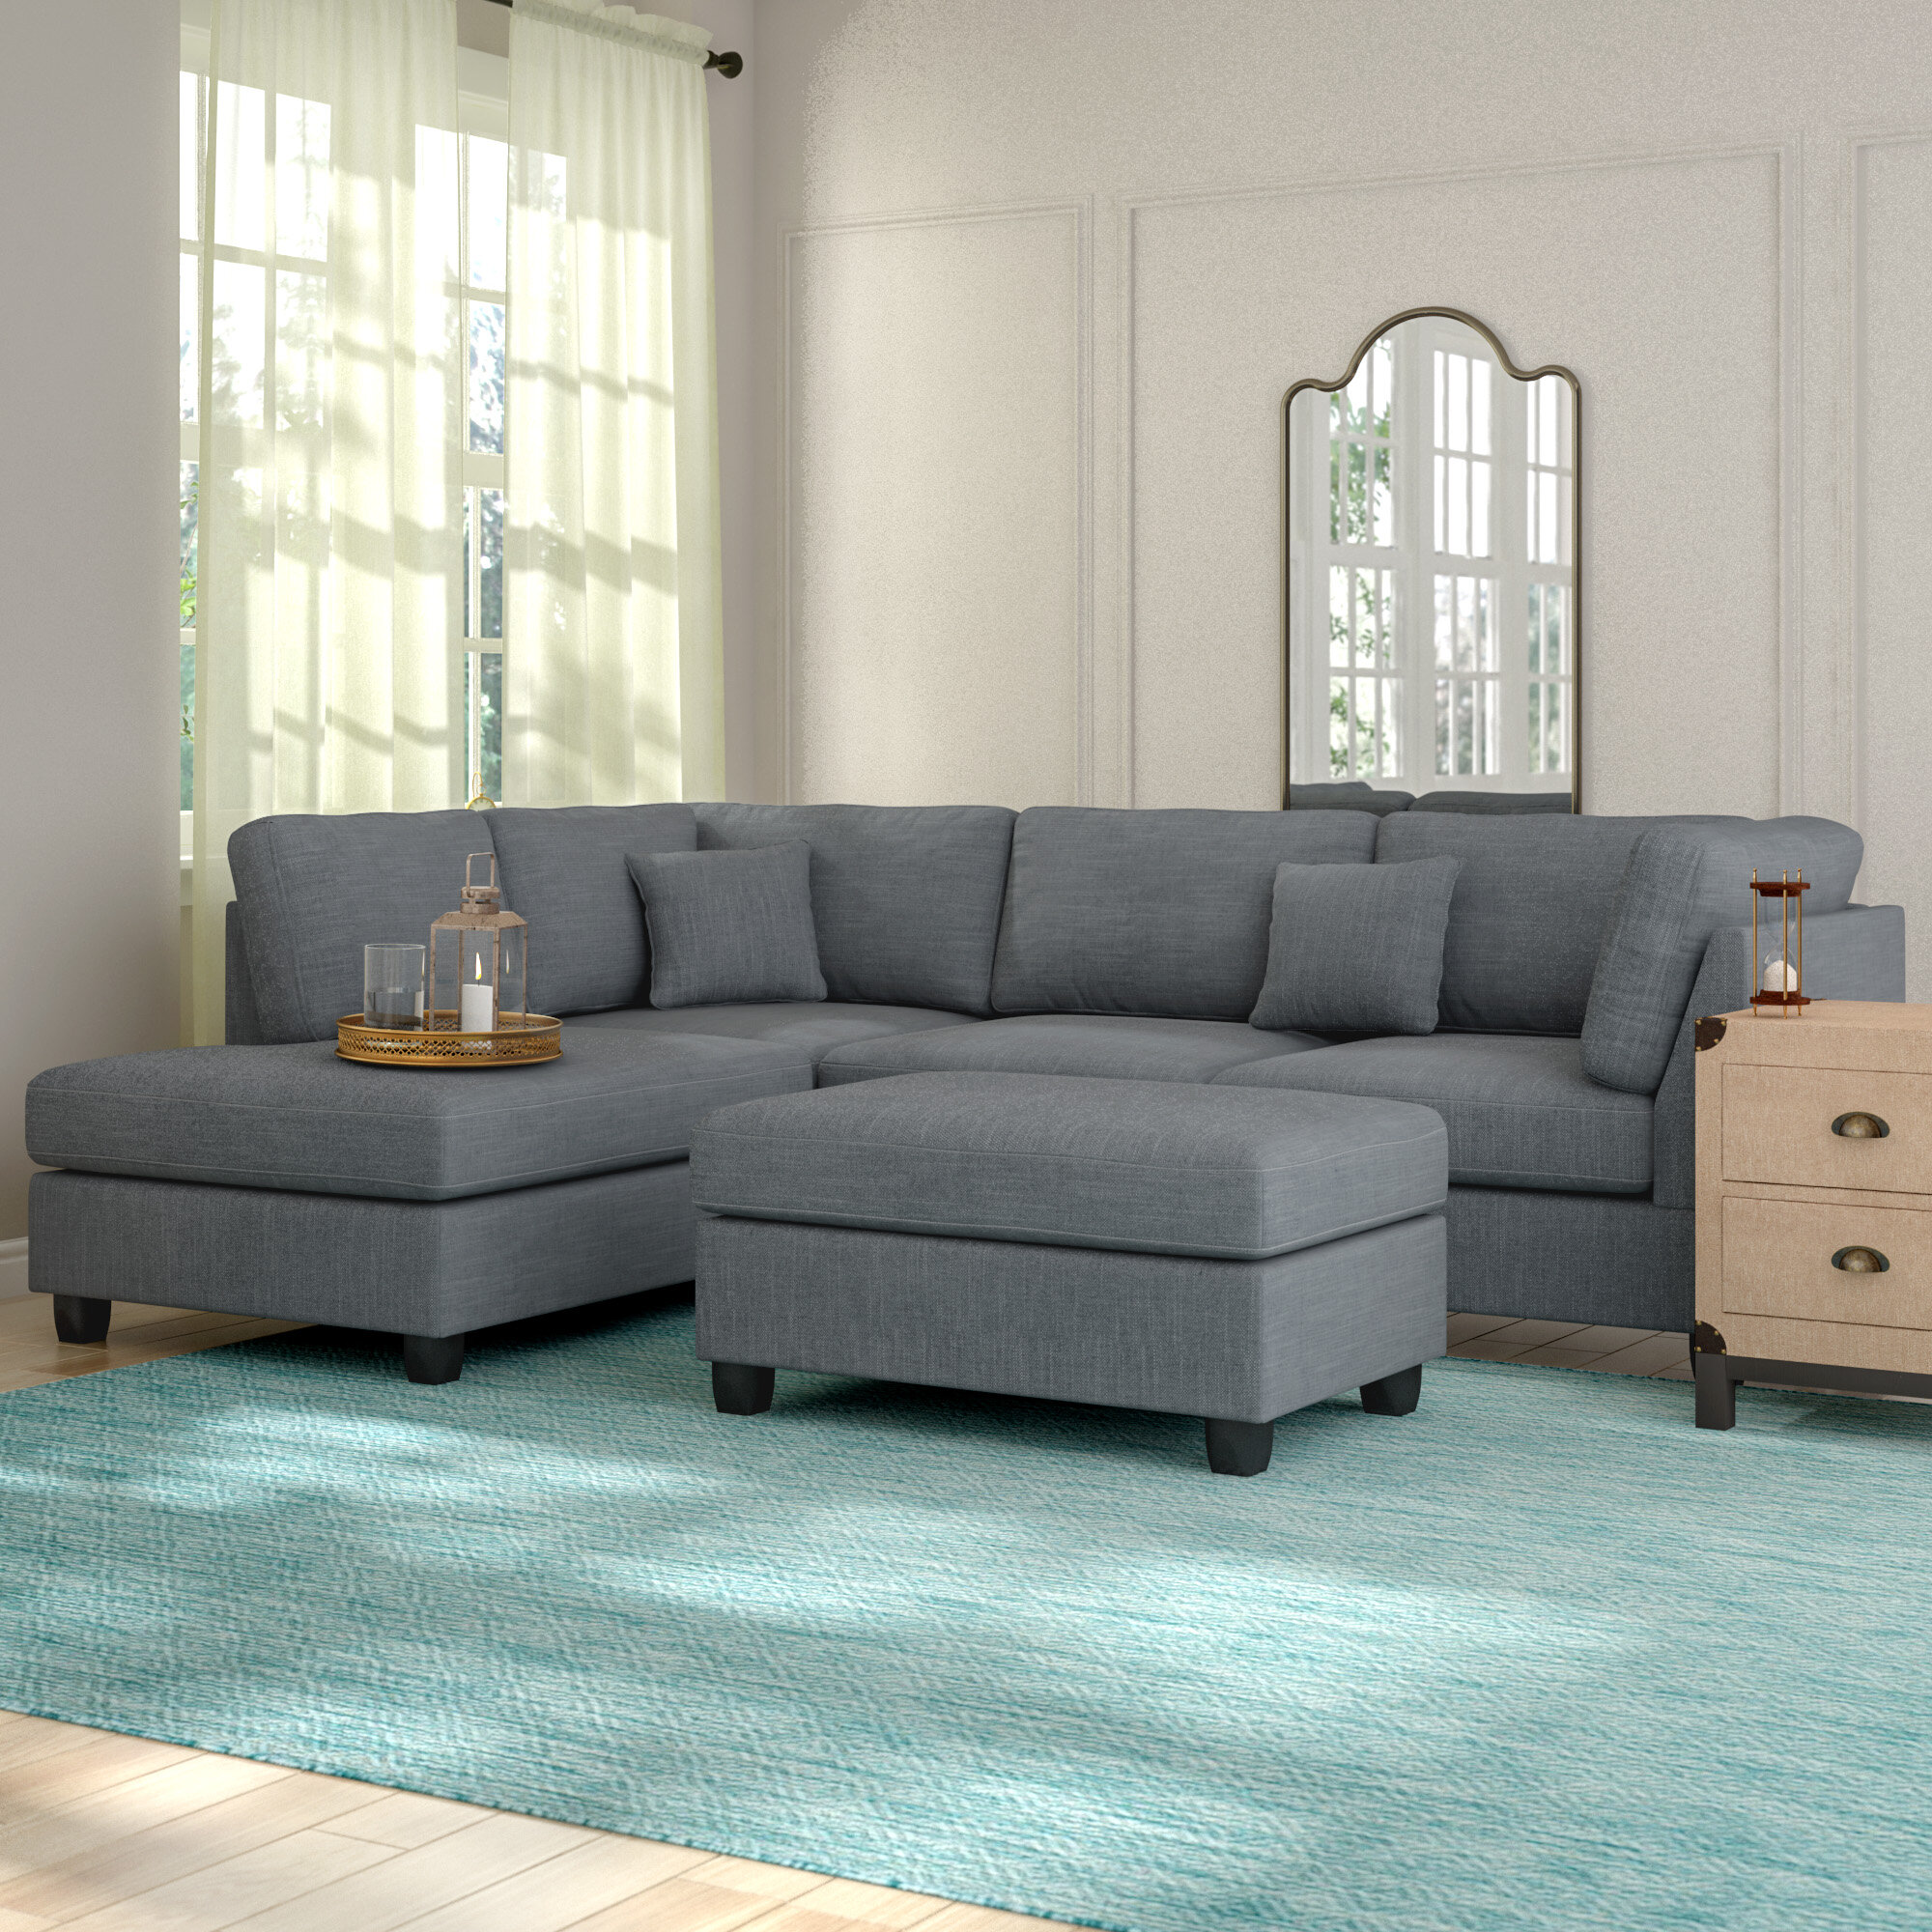 place sectional living sofa luxe discount sutton piece warehouse room of sofas the dump furniture outlet picture grey